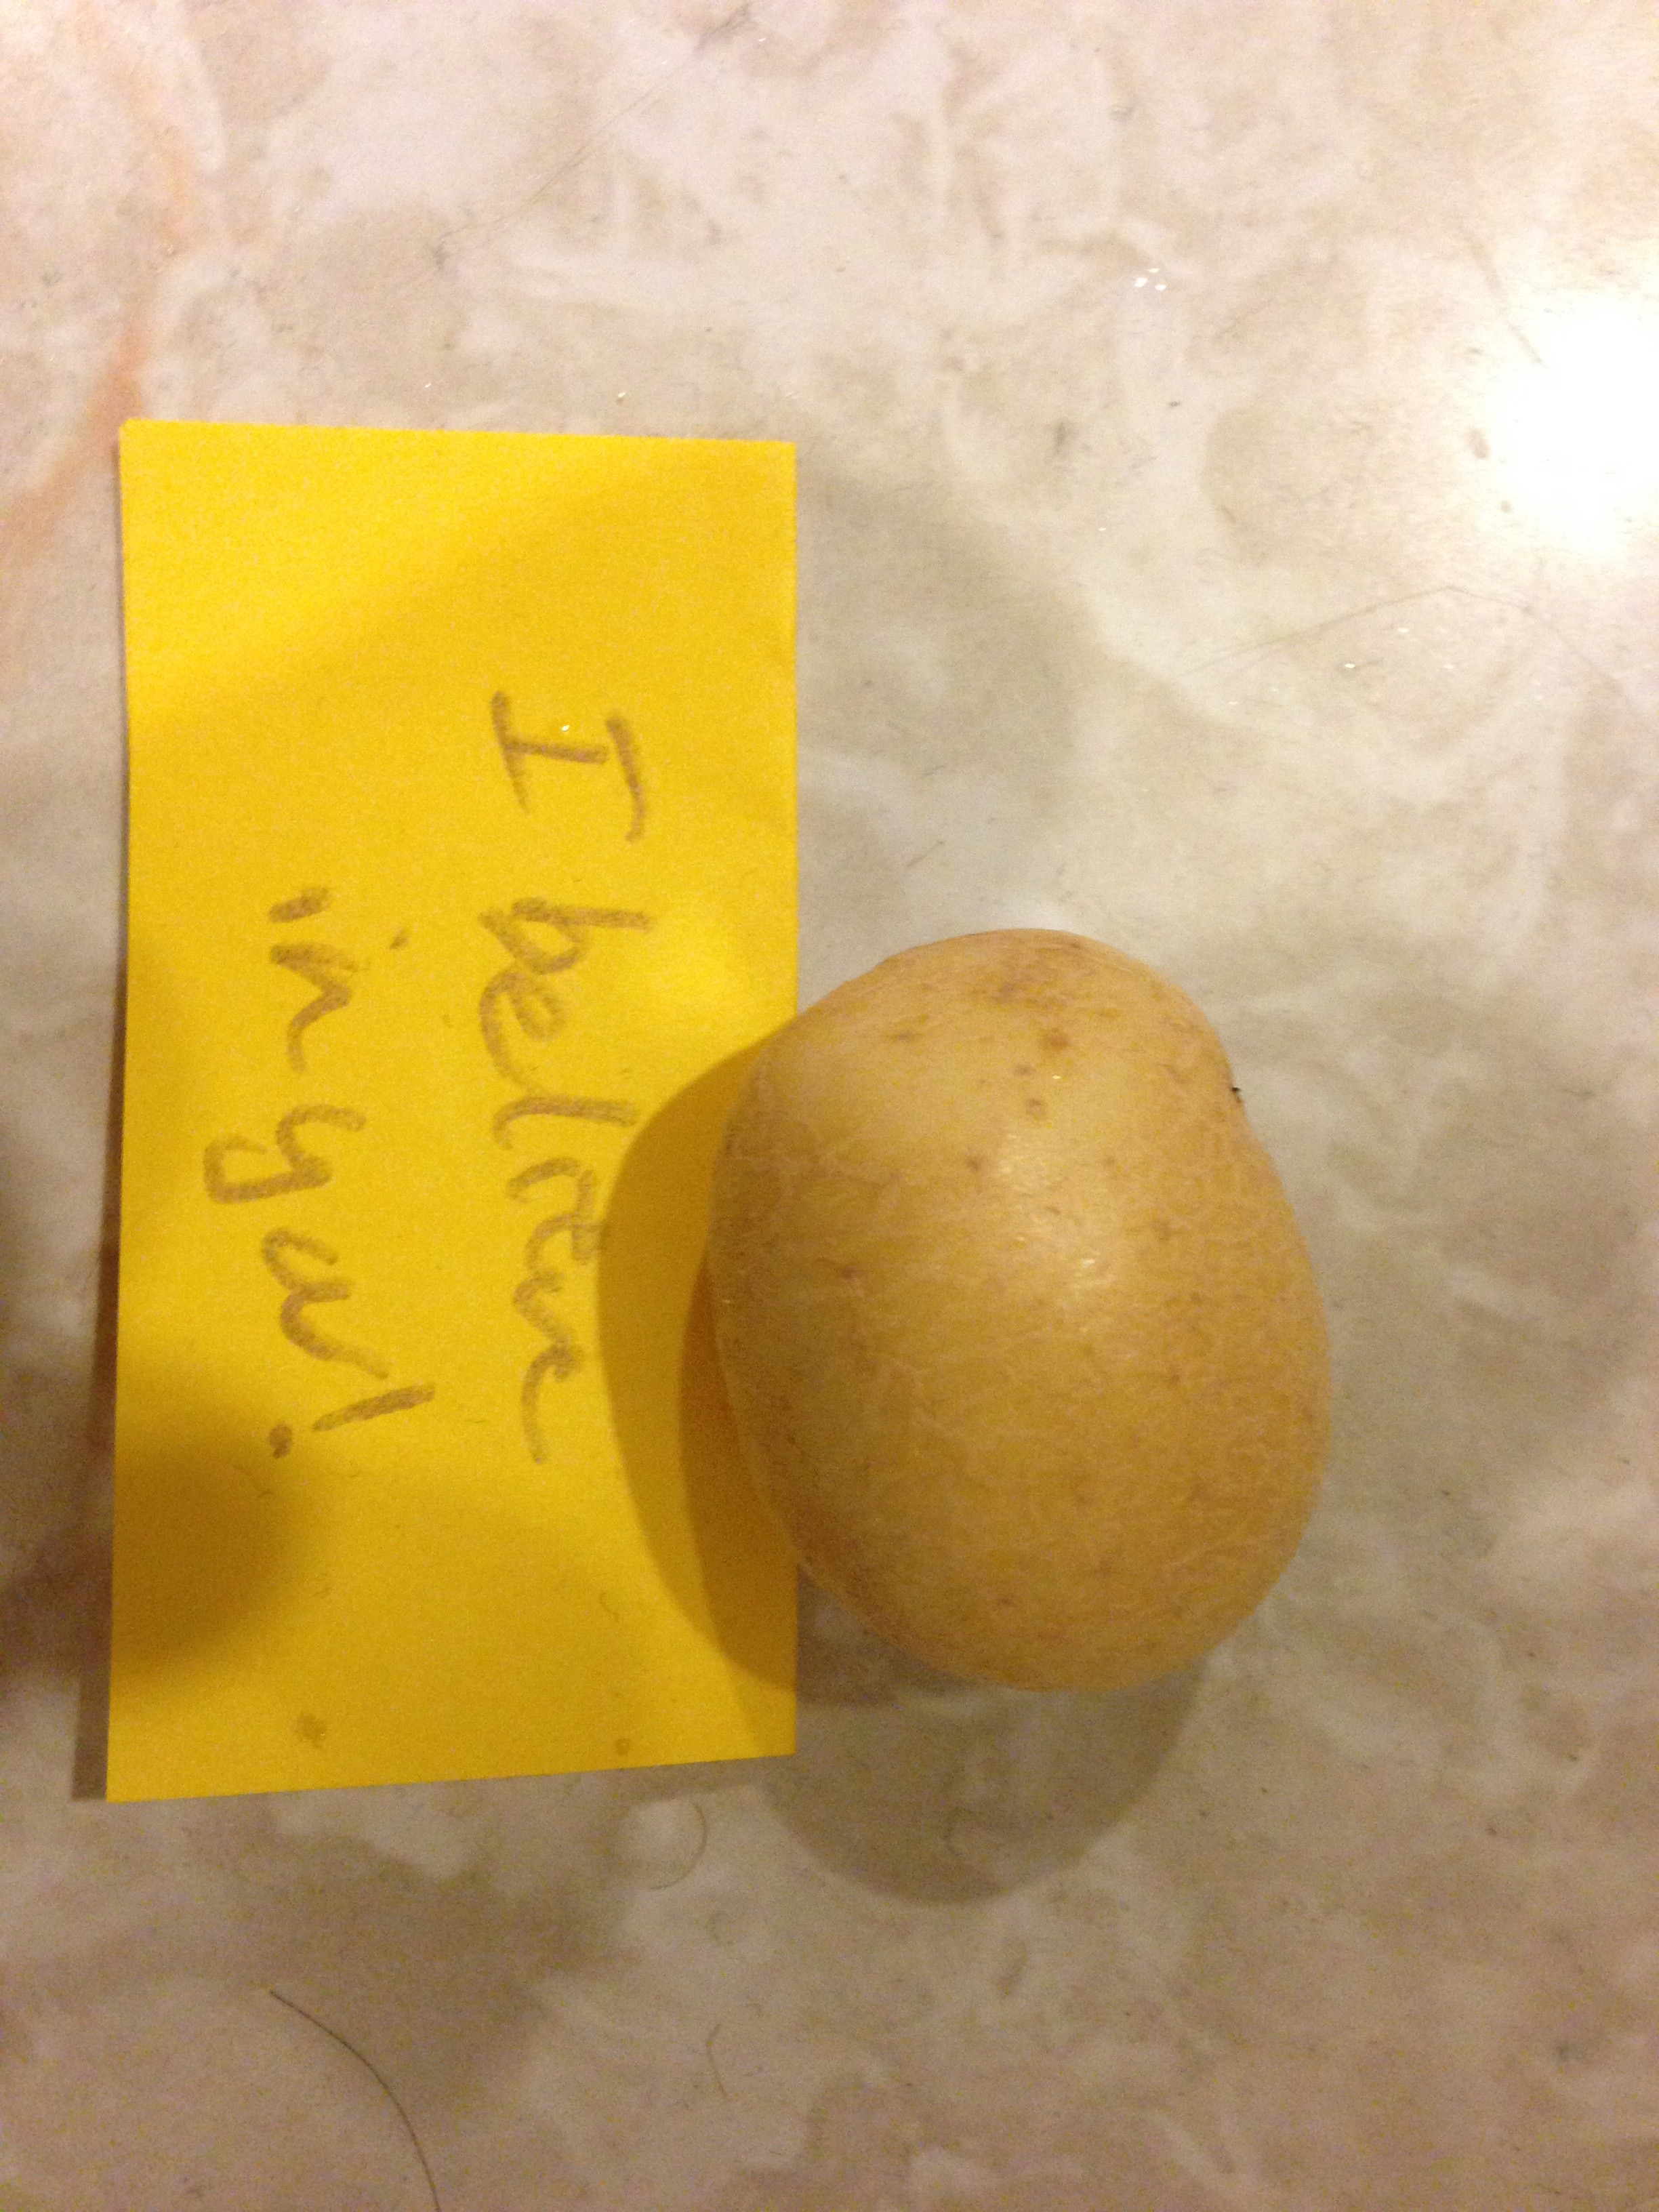 This tiny potato helped us through many a difficult time.  Its love is still with us.